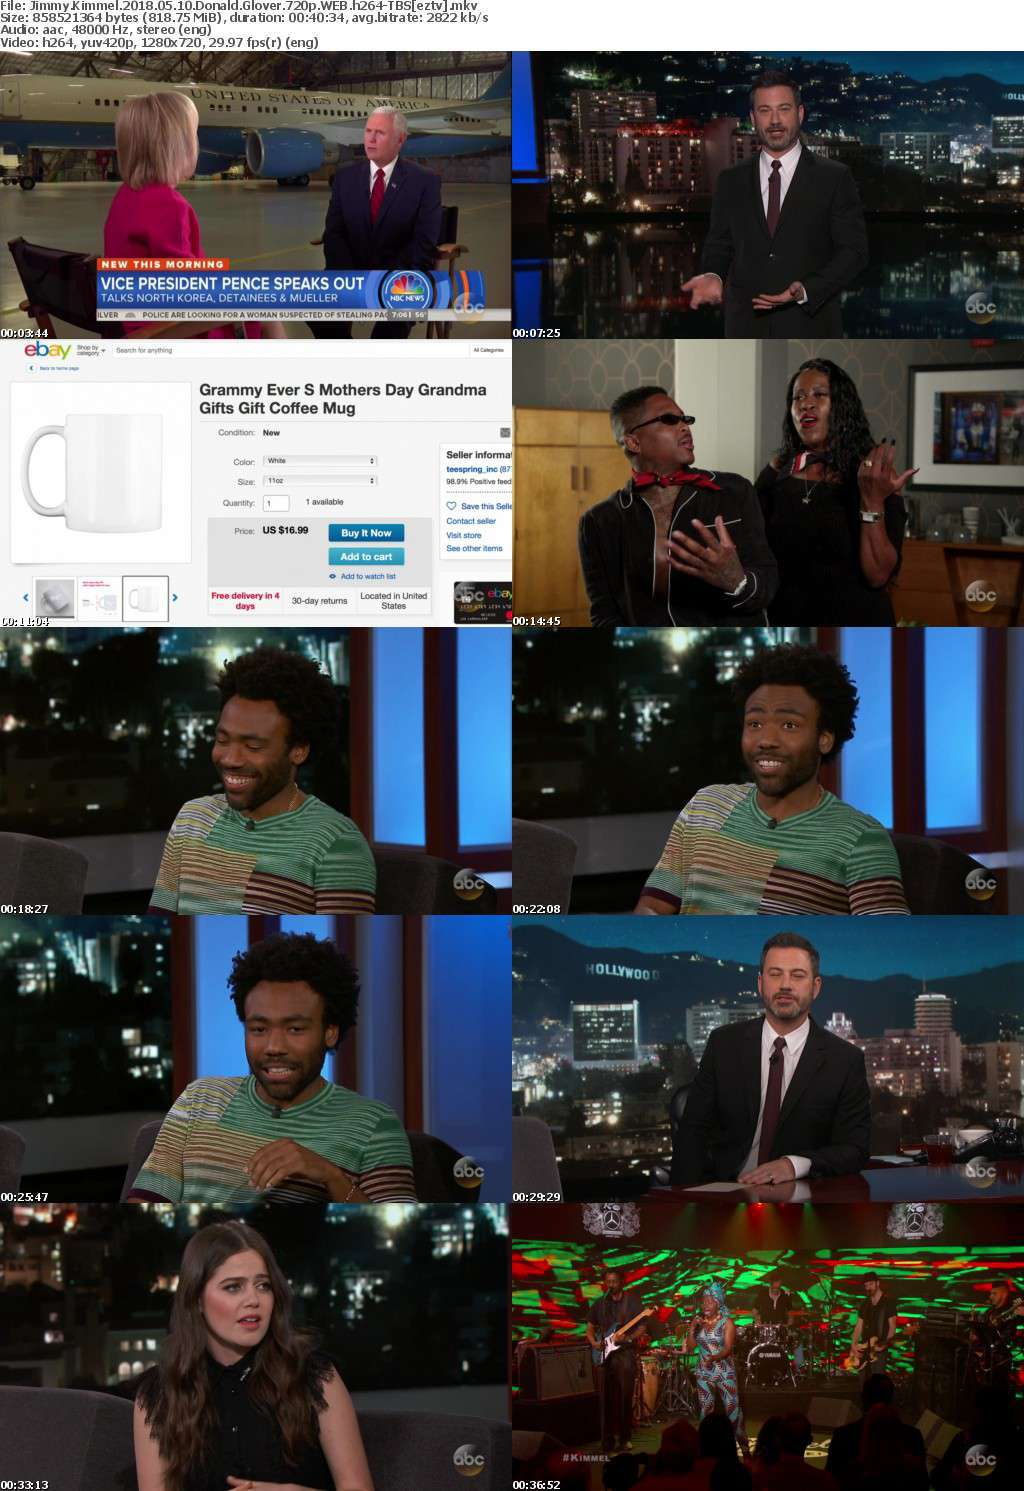 Jimmy Kimmel 2018 05 10 Donald Glover 720p WEB h264-TBS